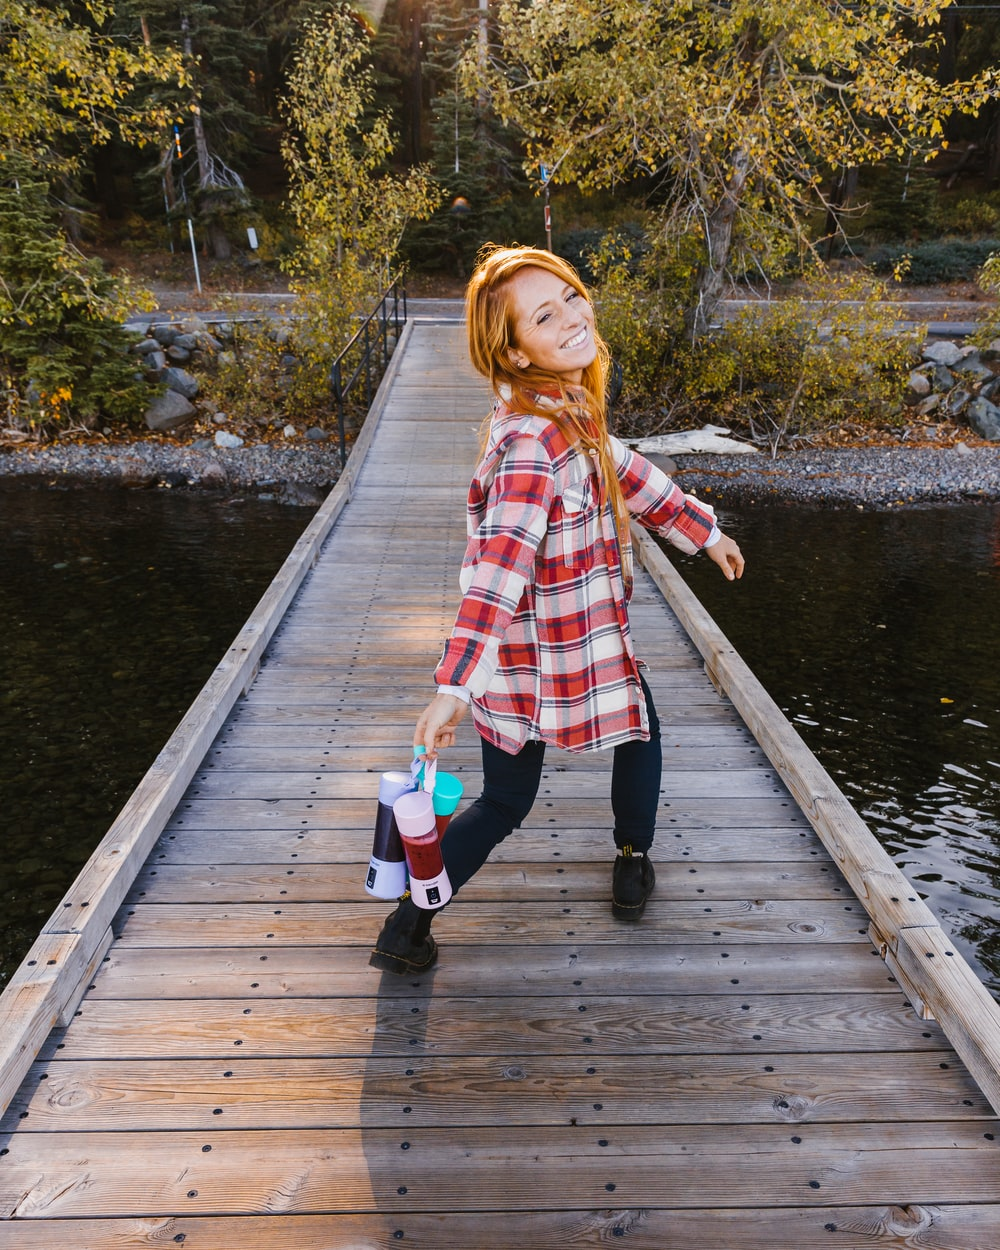 smiling woman wearing plaid shirt walking on bridge